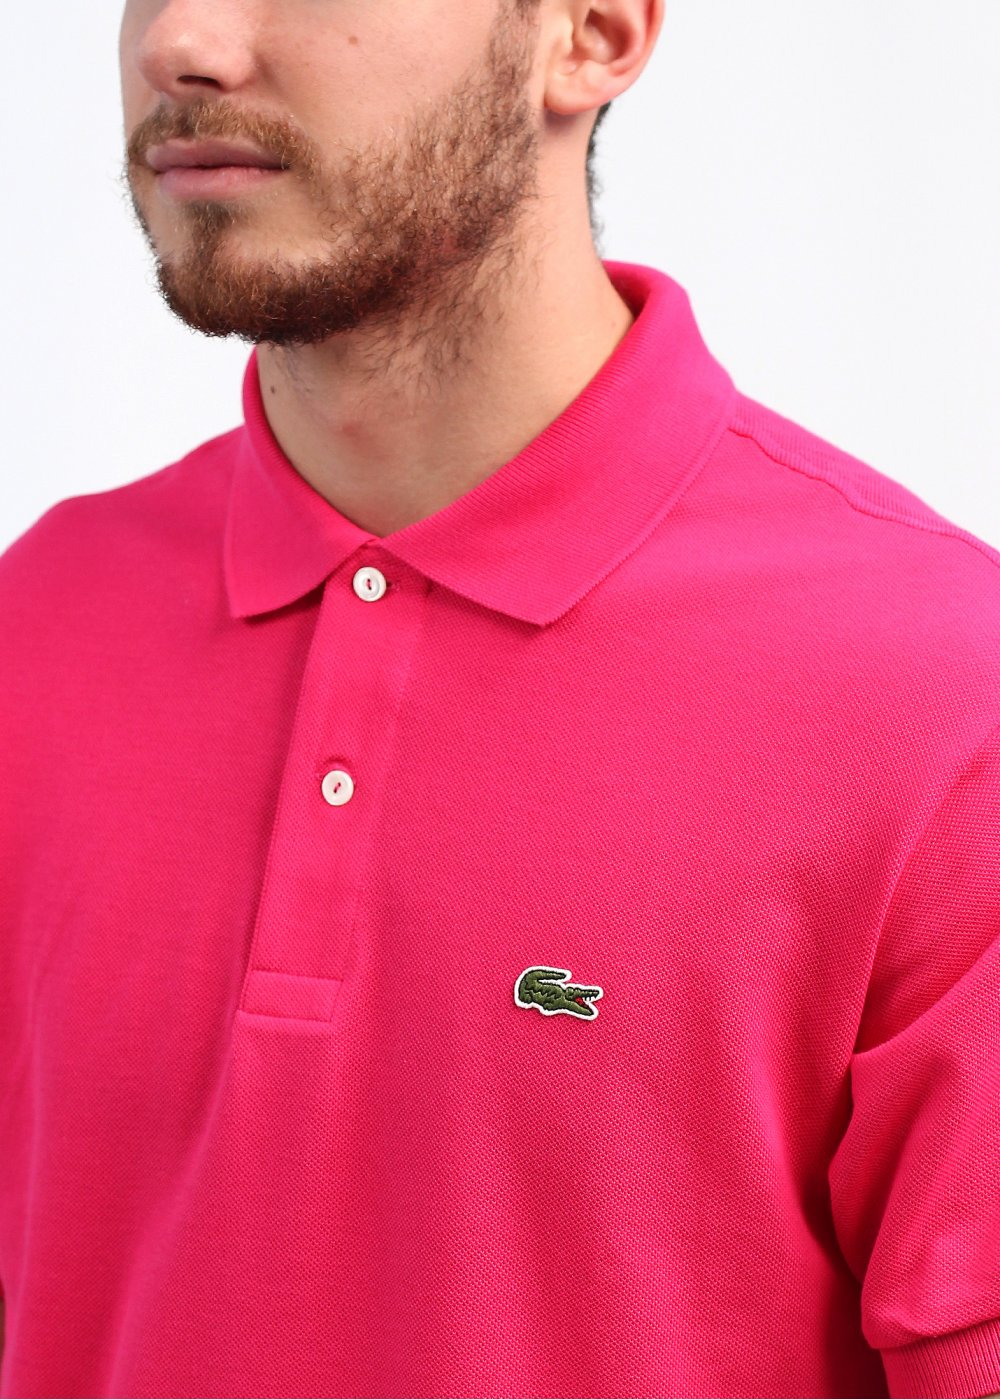 237b3264a Lacoste Best Polo Shirt - Bright Pink